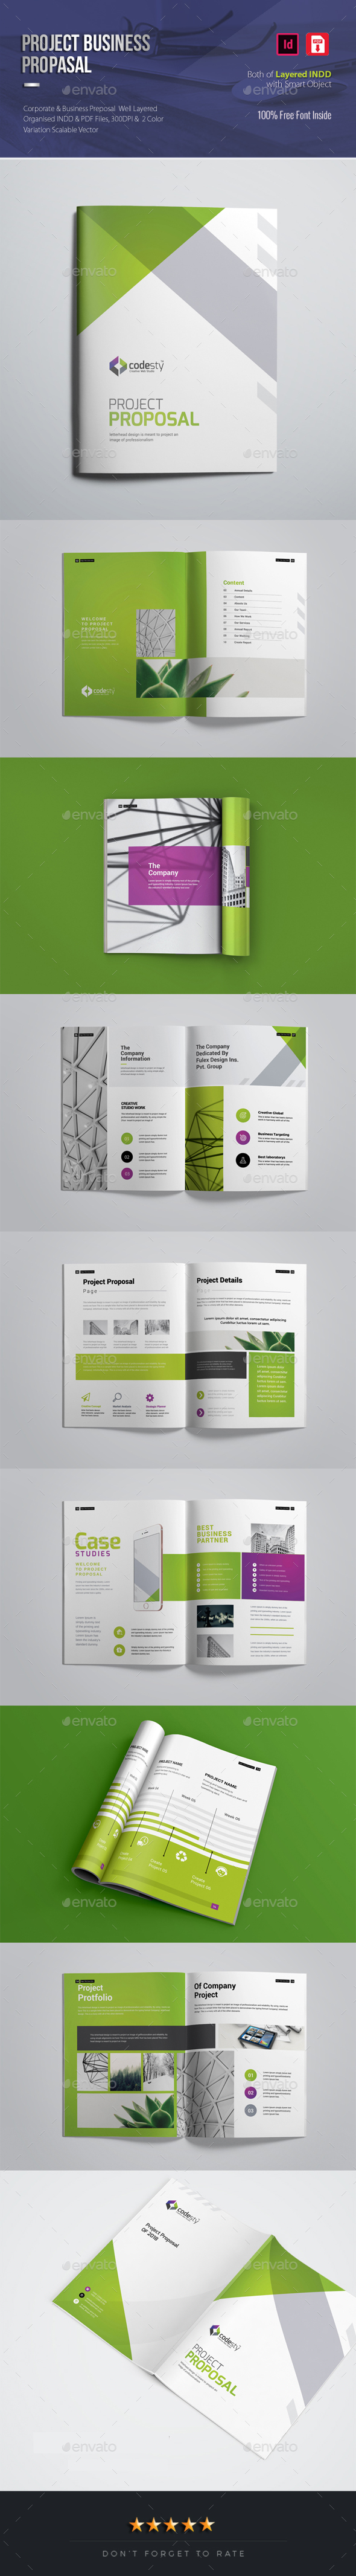 Project & Business Proposal - Proposals & Invoices Stationery